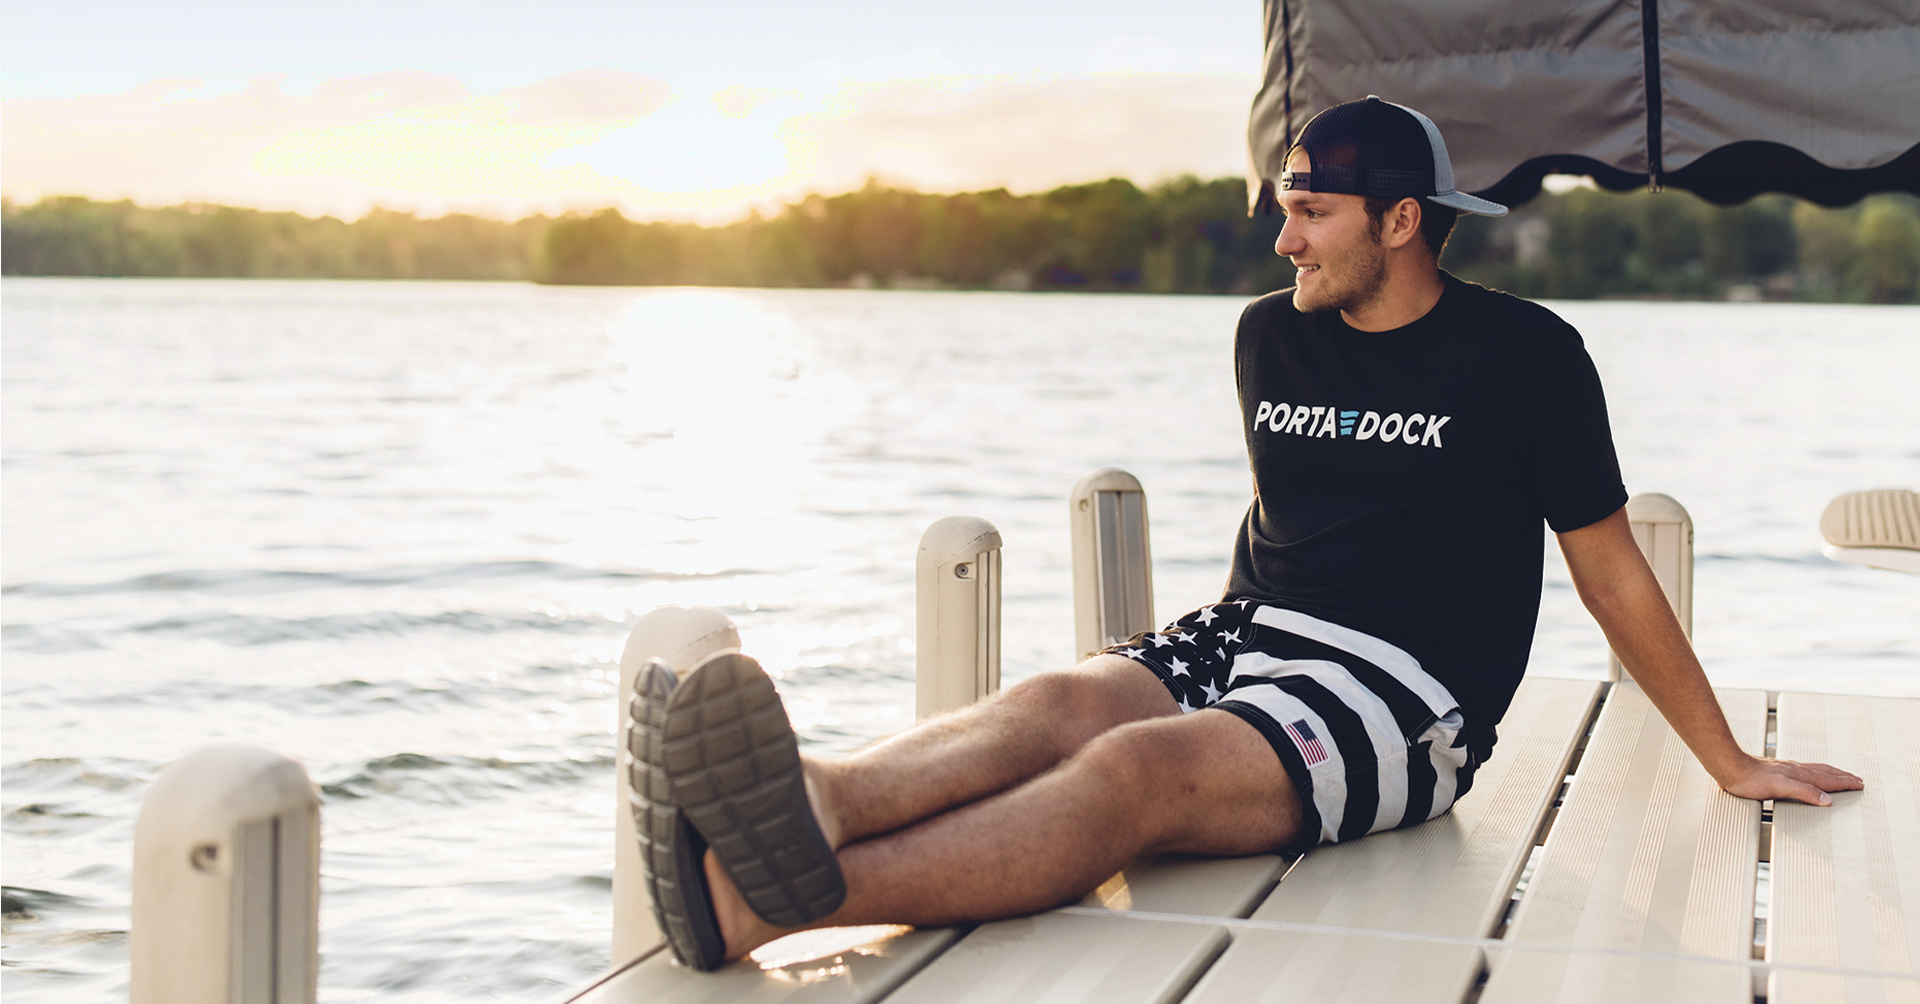 Sitting on the edge of a Porta-Dock dock on the lake